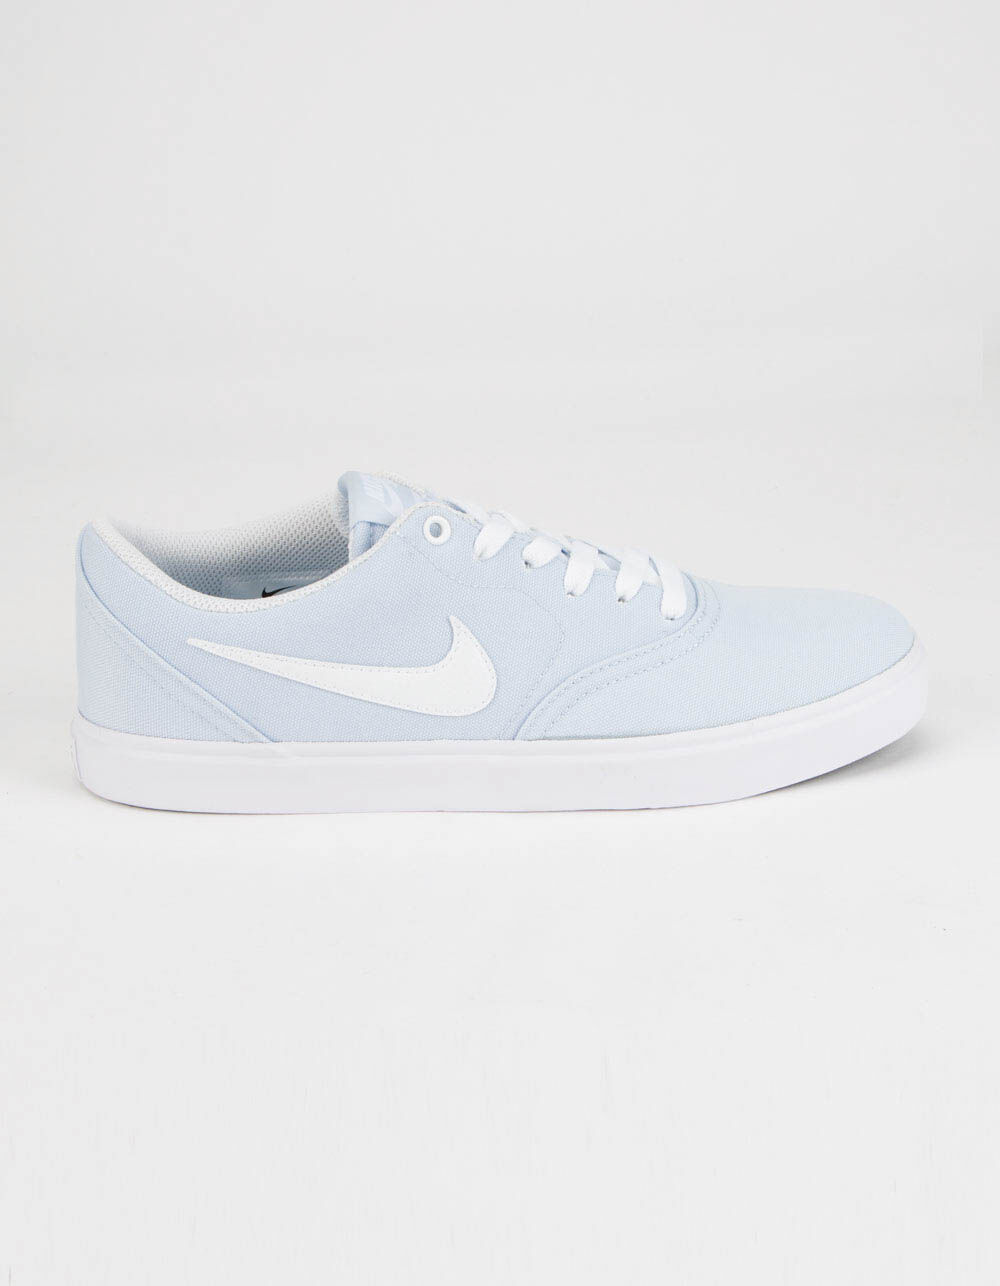 NIKE SB Check Solarsoft Canvas Baby Blue Shoes